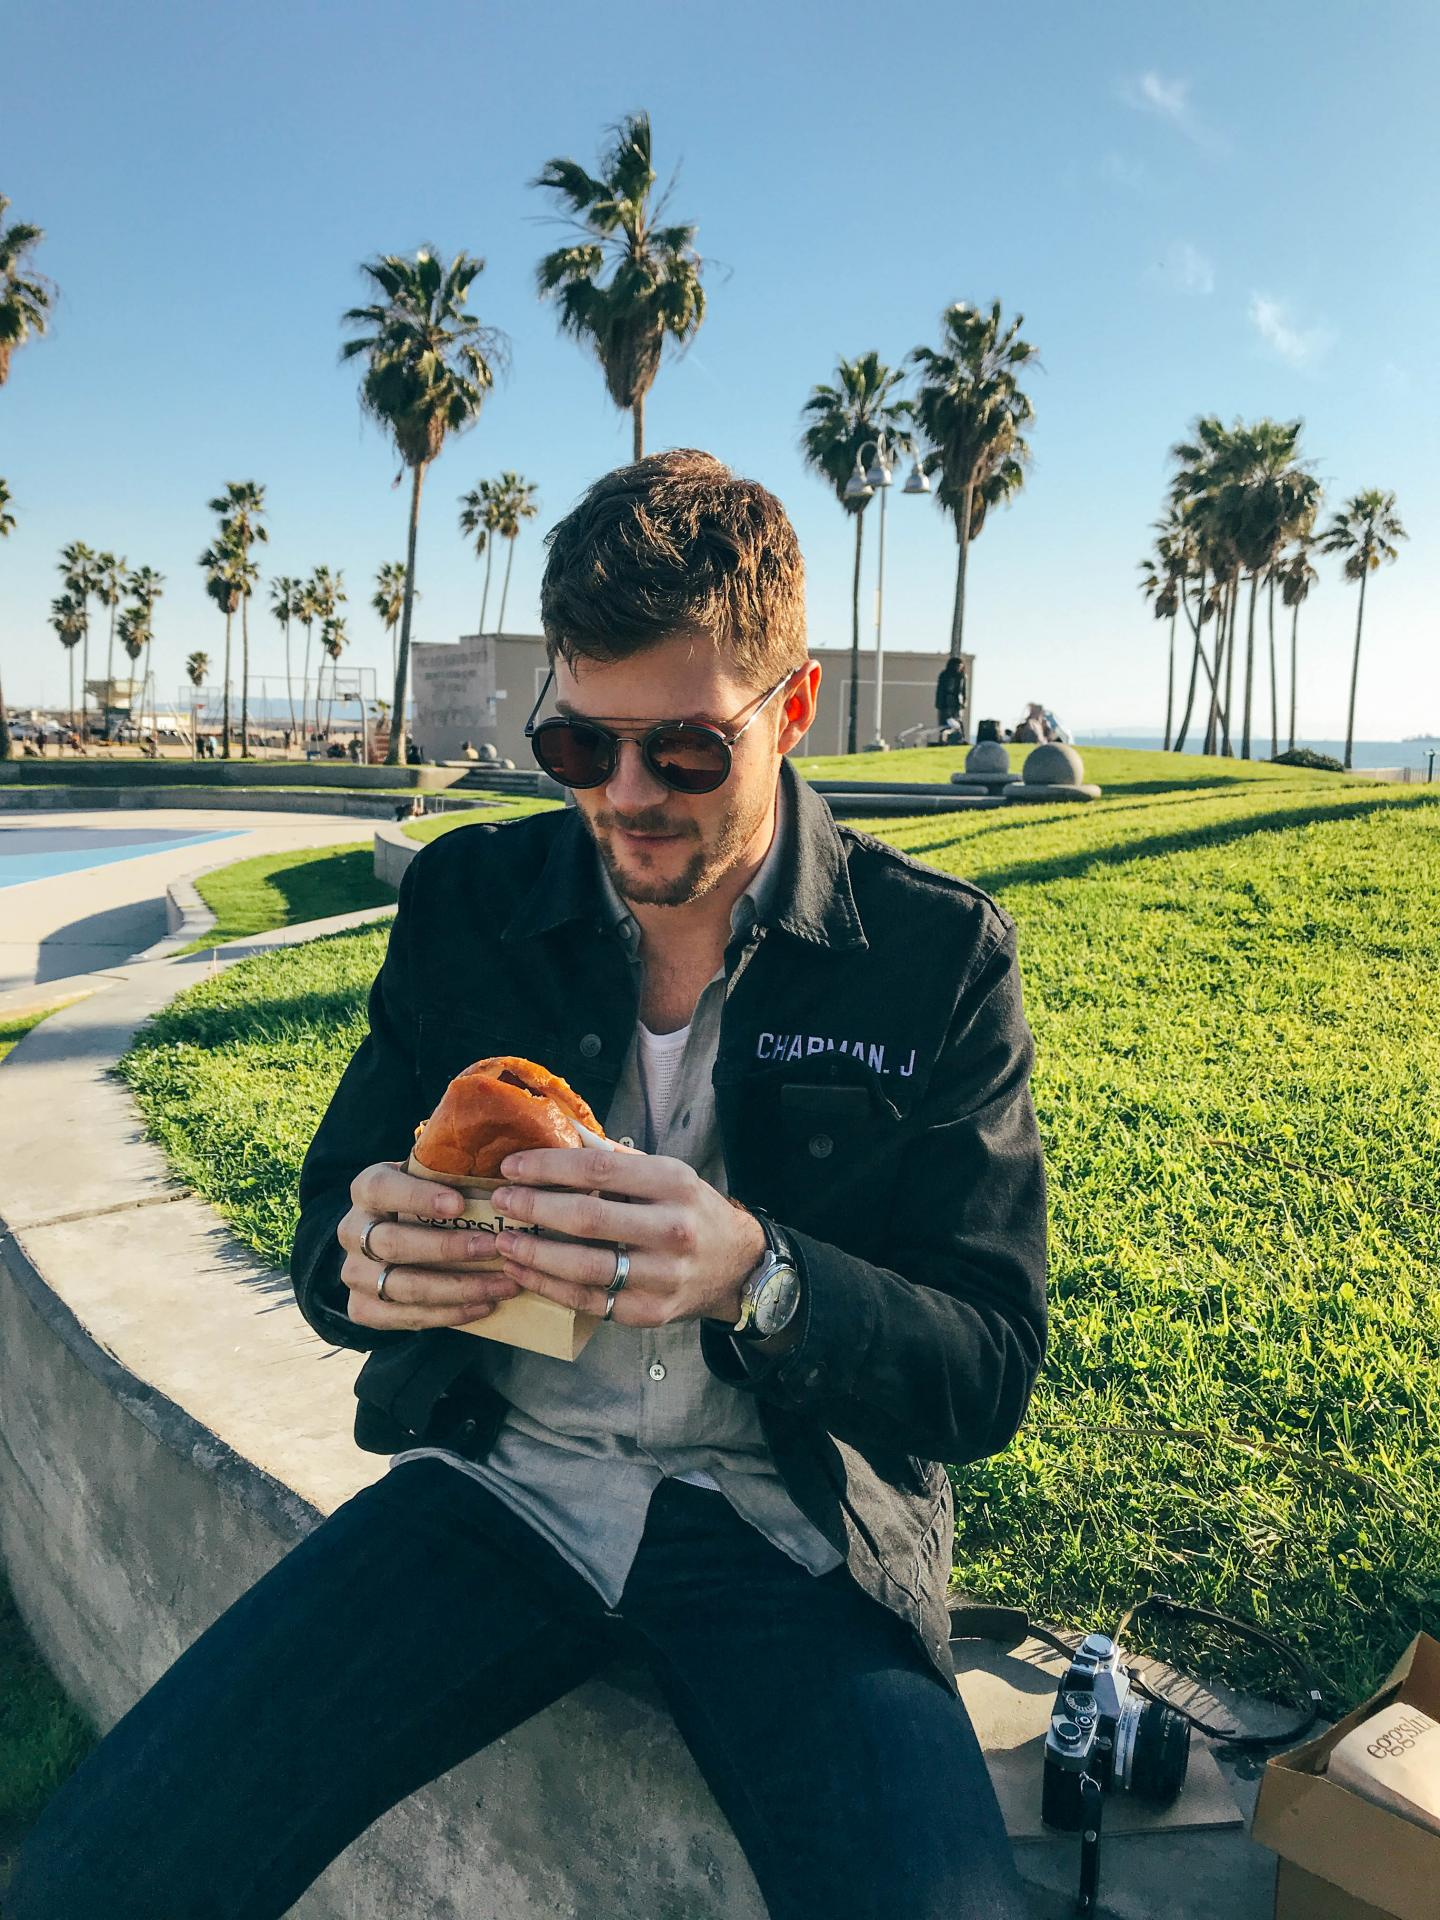 My Favourite Places to Eat in LA - Jim Chapman